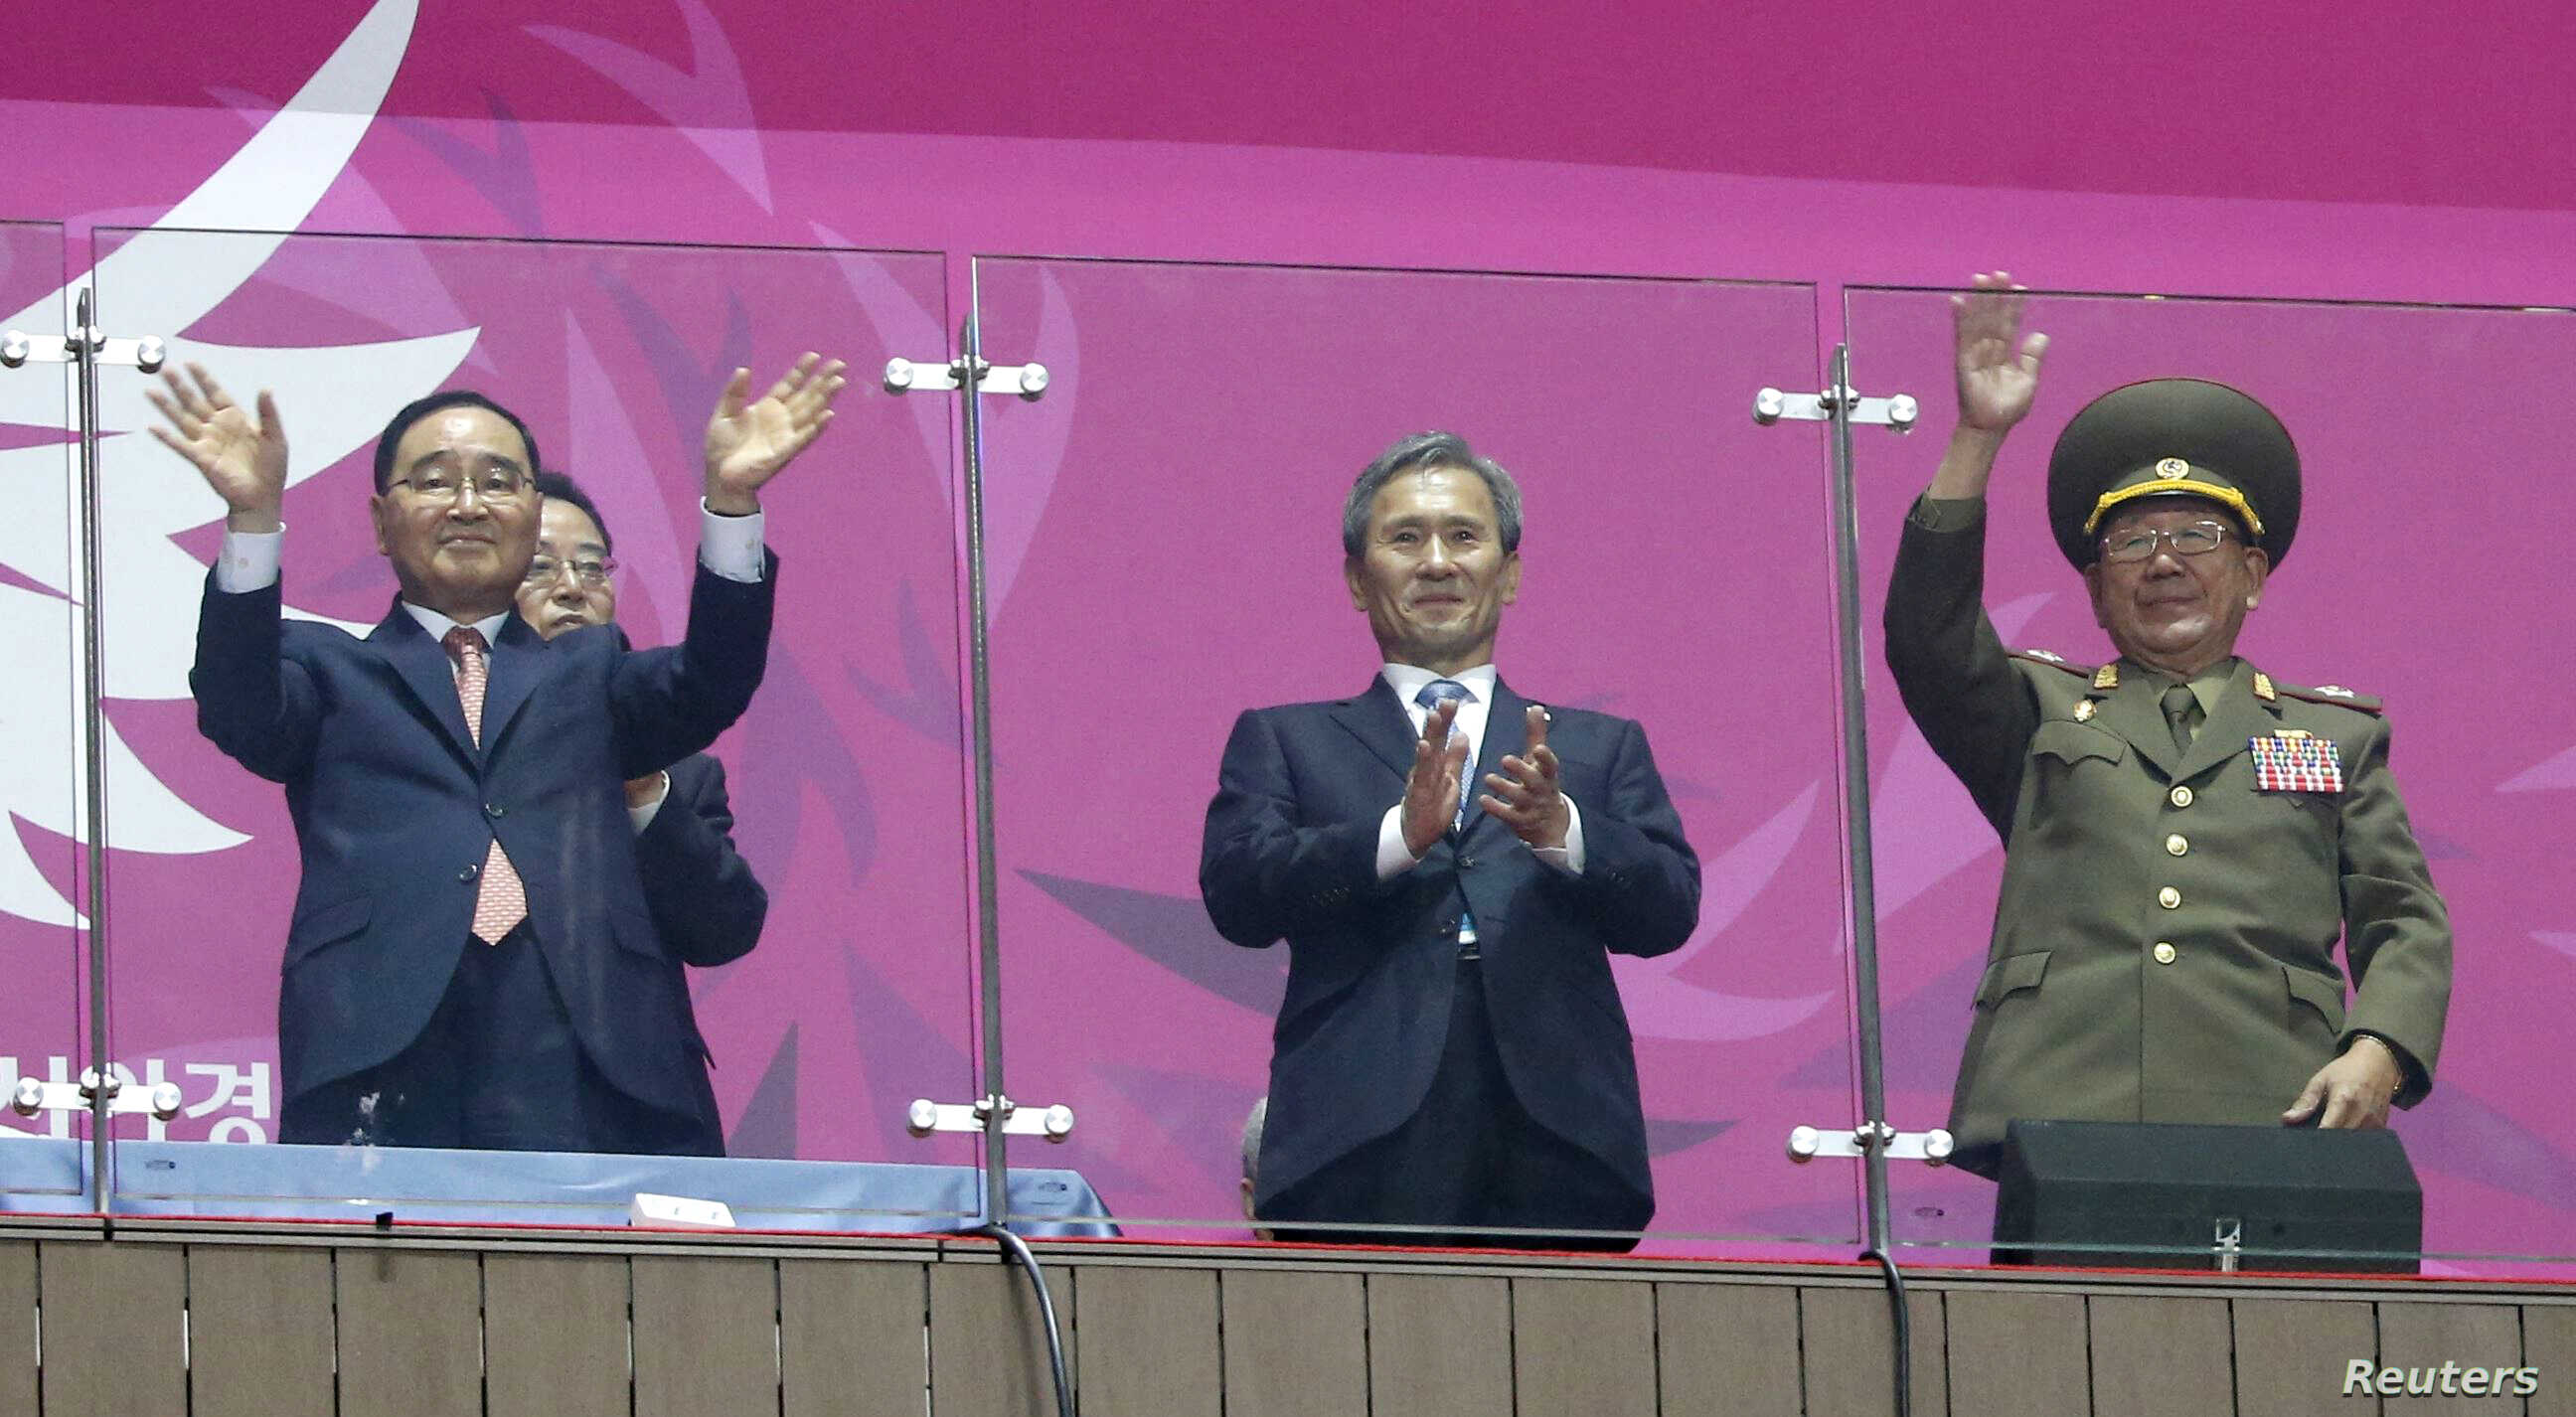 South Korea's Prime Minister Jung Hong-won (L), former South Korean minister for national defense Kim Kwan-jin (C) and North Korea's Hwang Pyong So (R), a senior aide to North Korea's leader Kim Jong Un, attend the closing ceremony of the 17th Asian